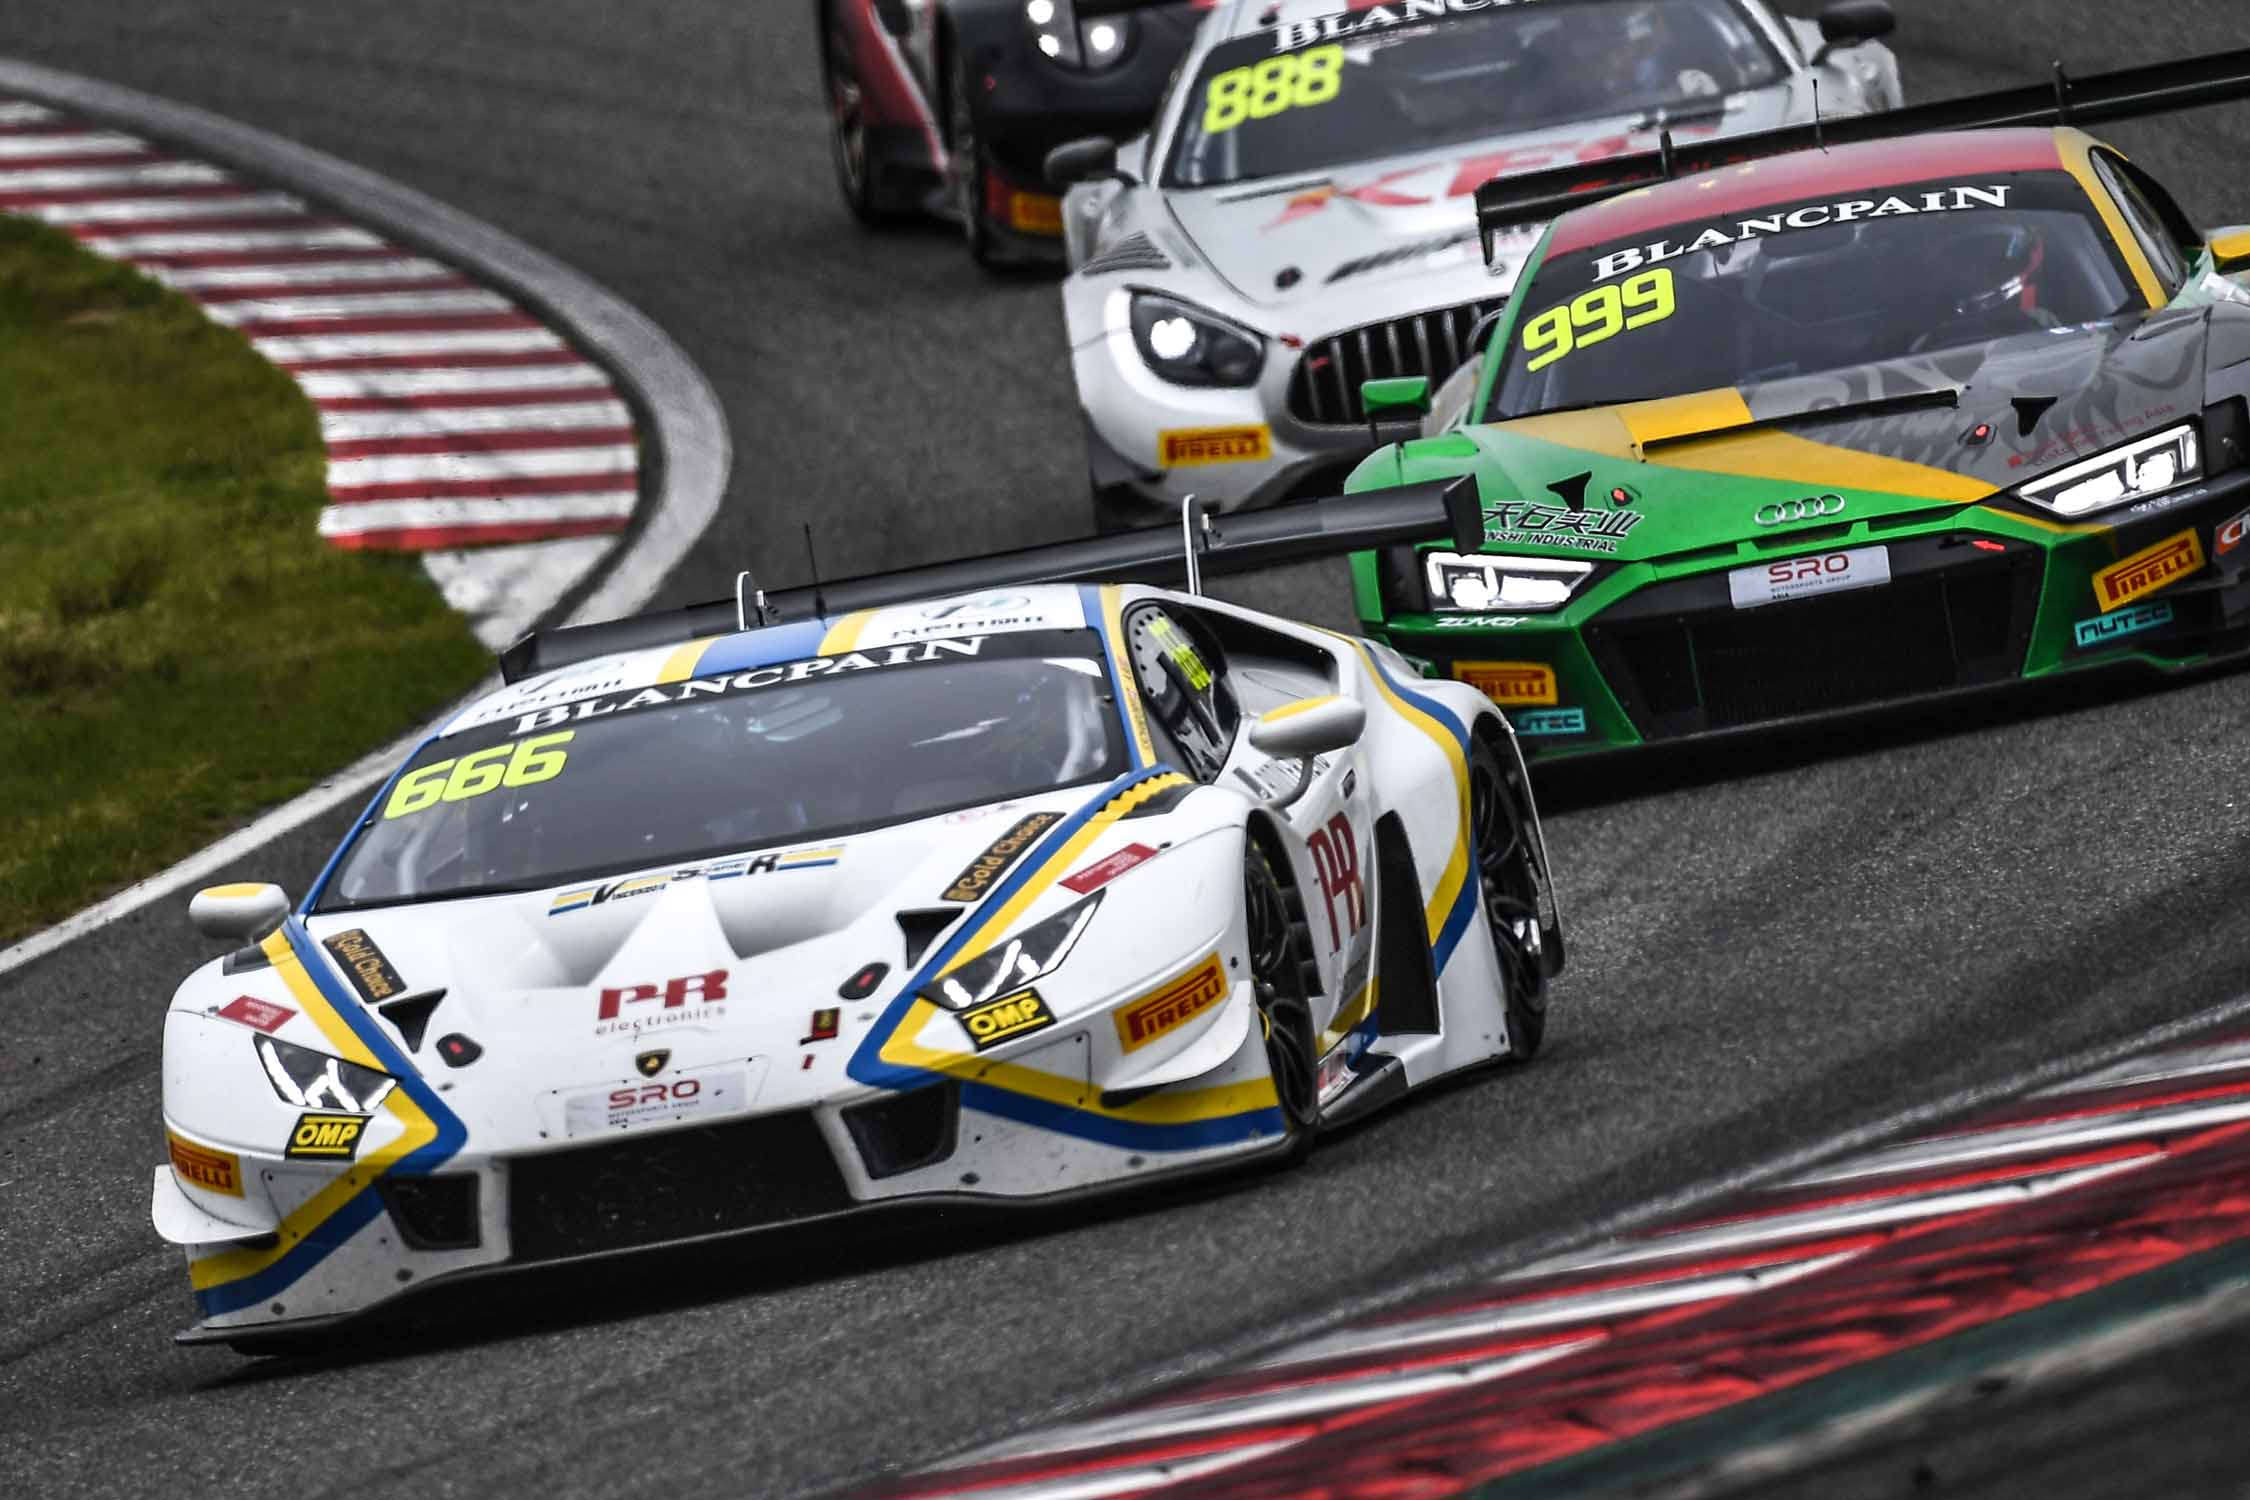 SUZUKA PODIUM FOR AU AND SCHANDORFF